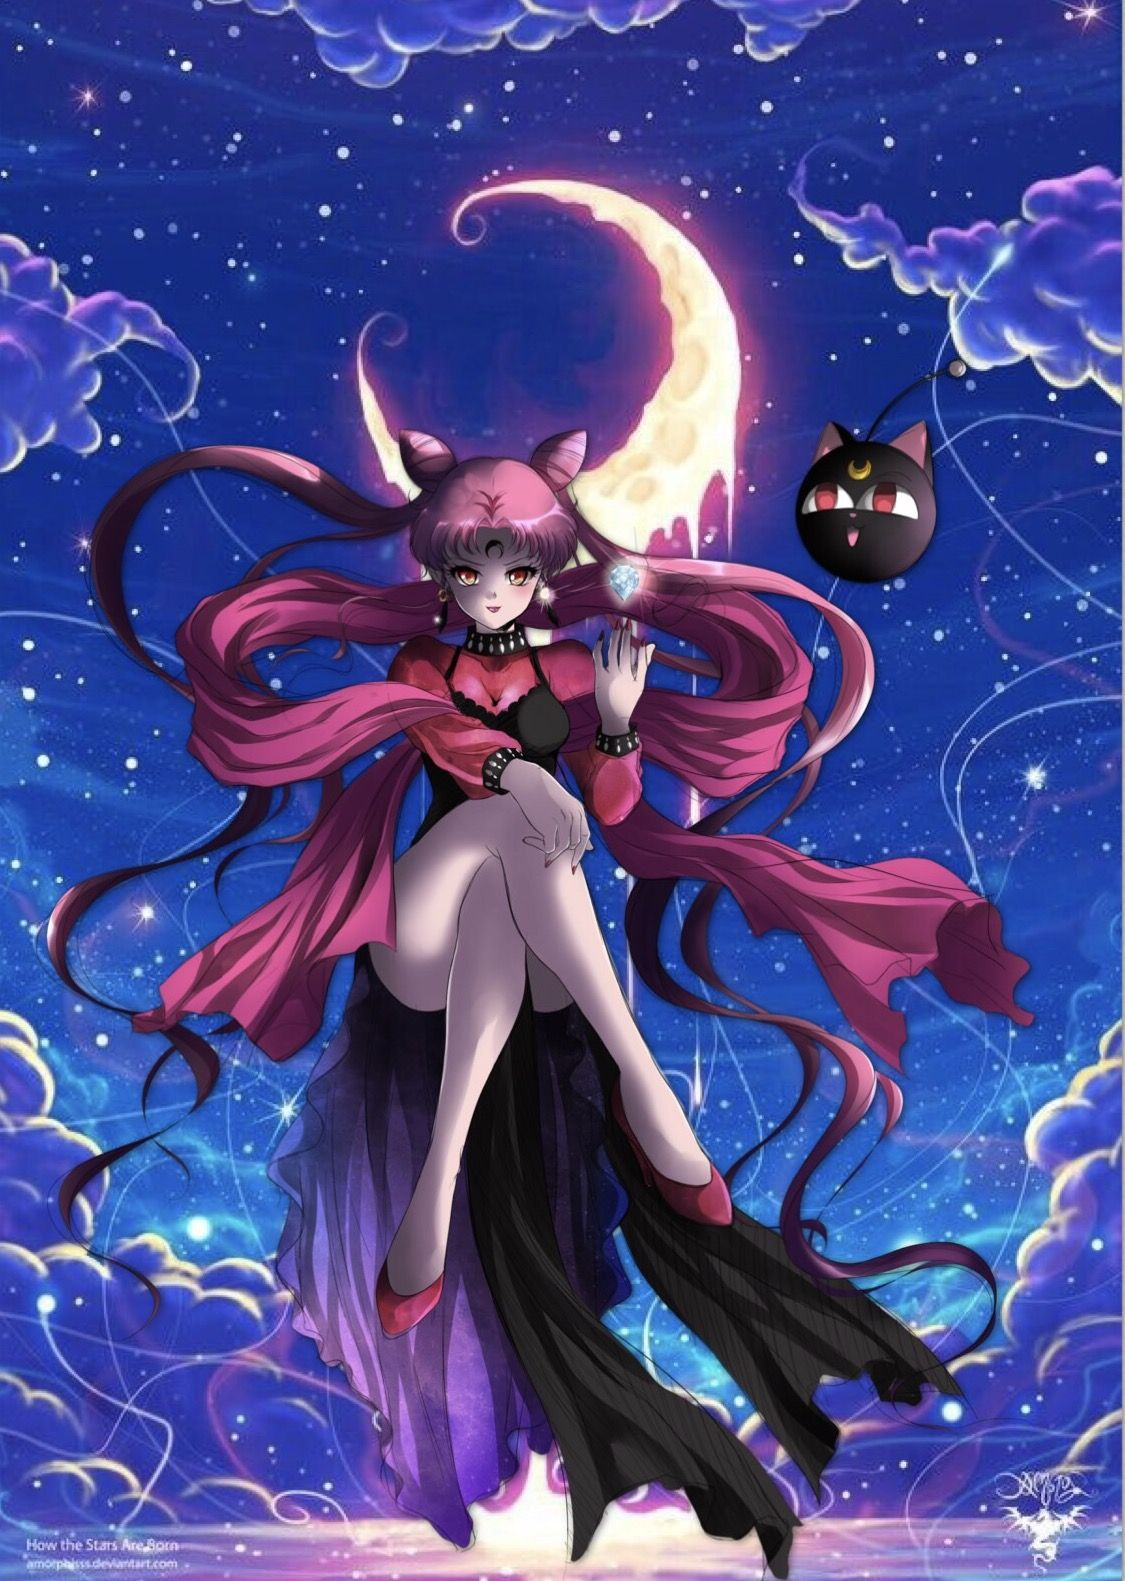 Black Lady Sailor Moon Wallpaper Sailor Mini Moon Sailor Moon Art